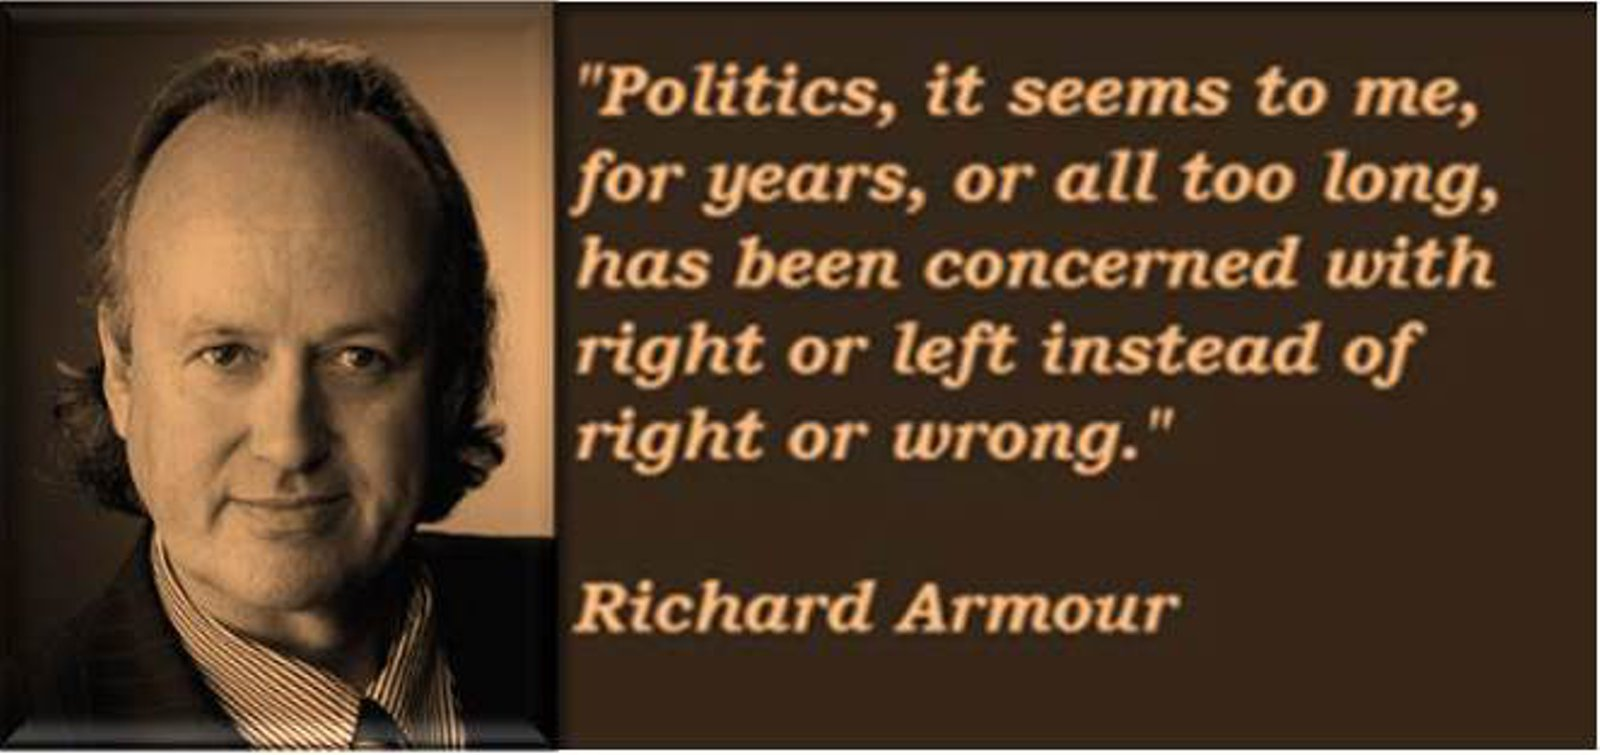 Richard Armour about left and right